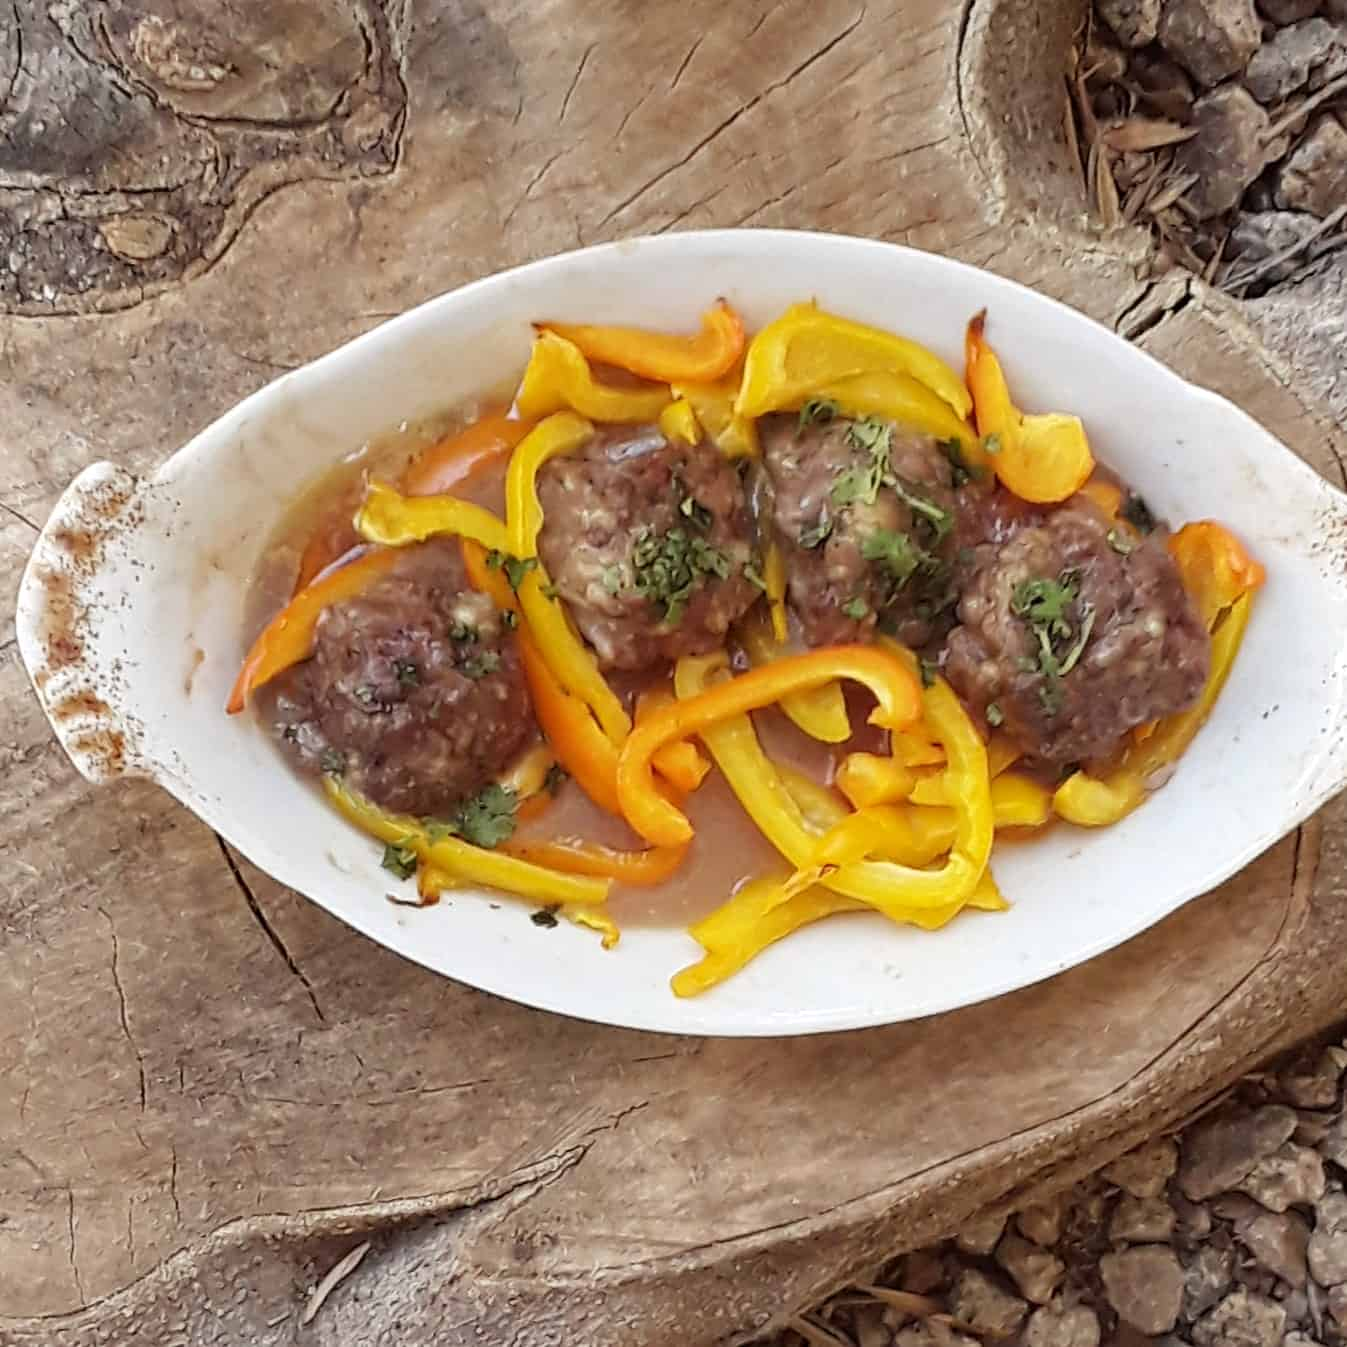 Baked meatballs with peppers in white baking dish.